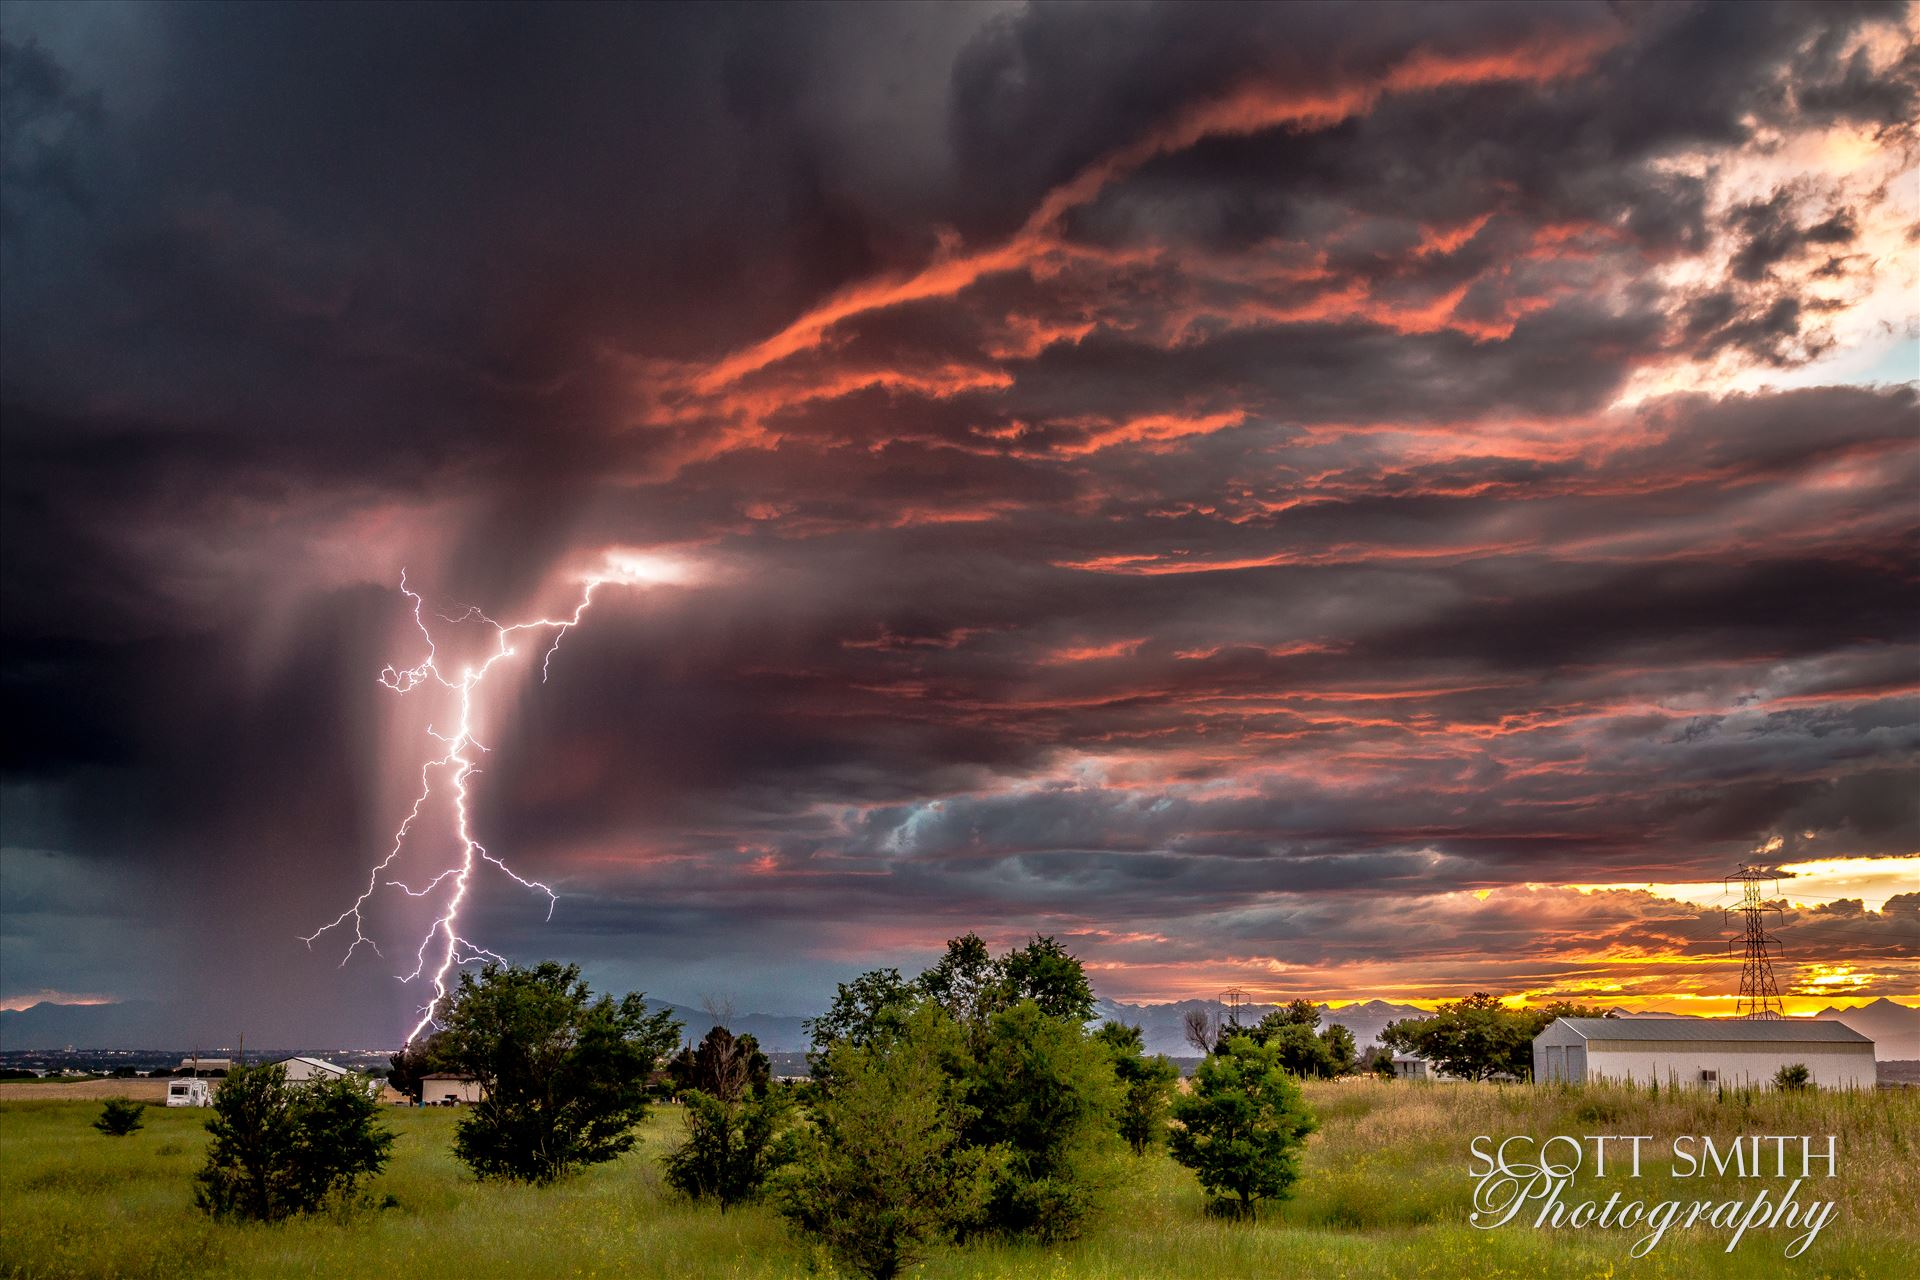 Colorado Sunset and LightningSunset and the beginning of a major lightning storm, east of Denver, Colorado.